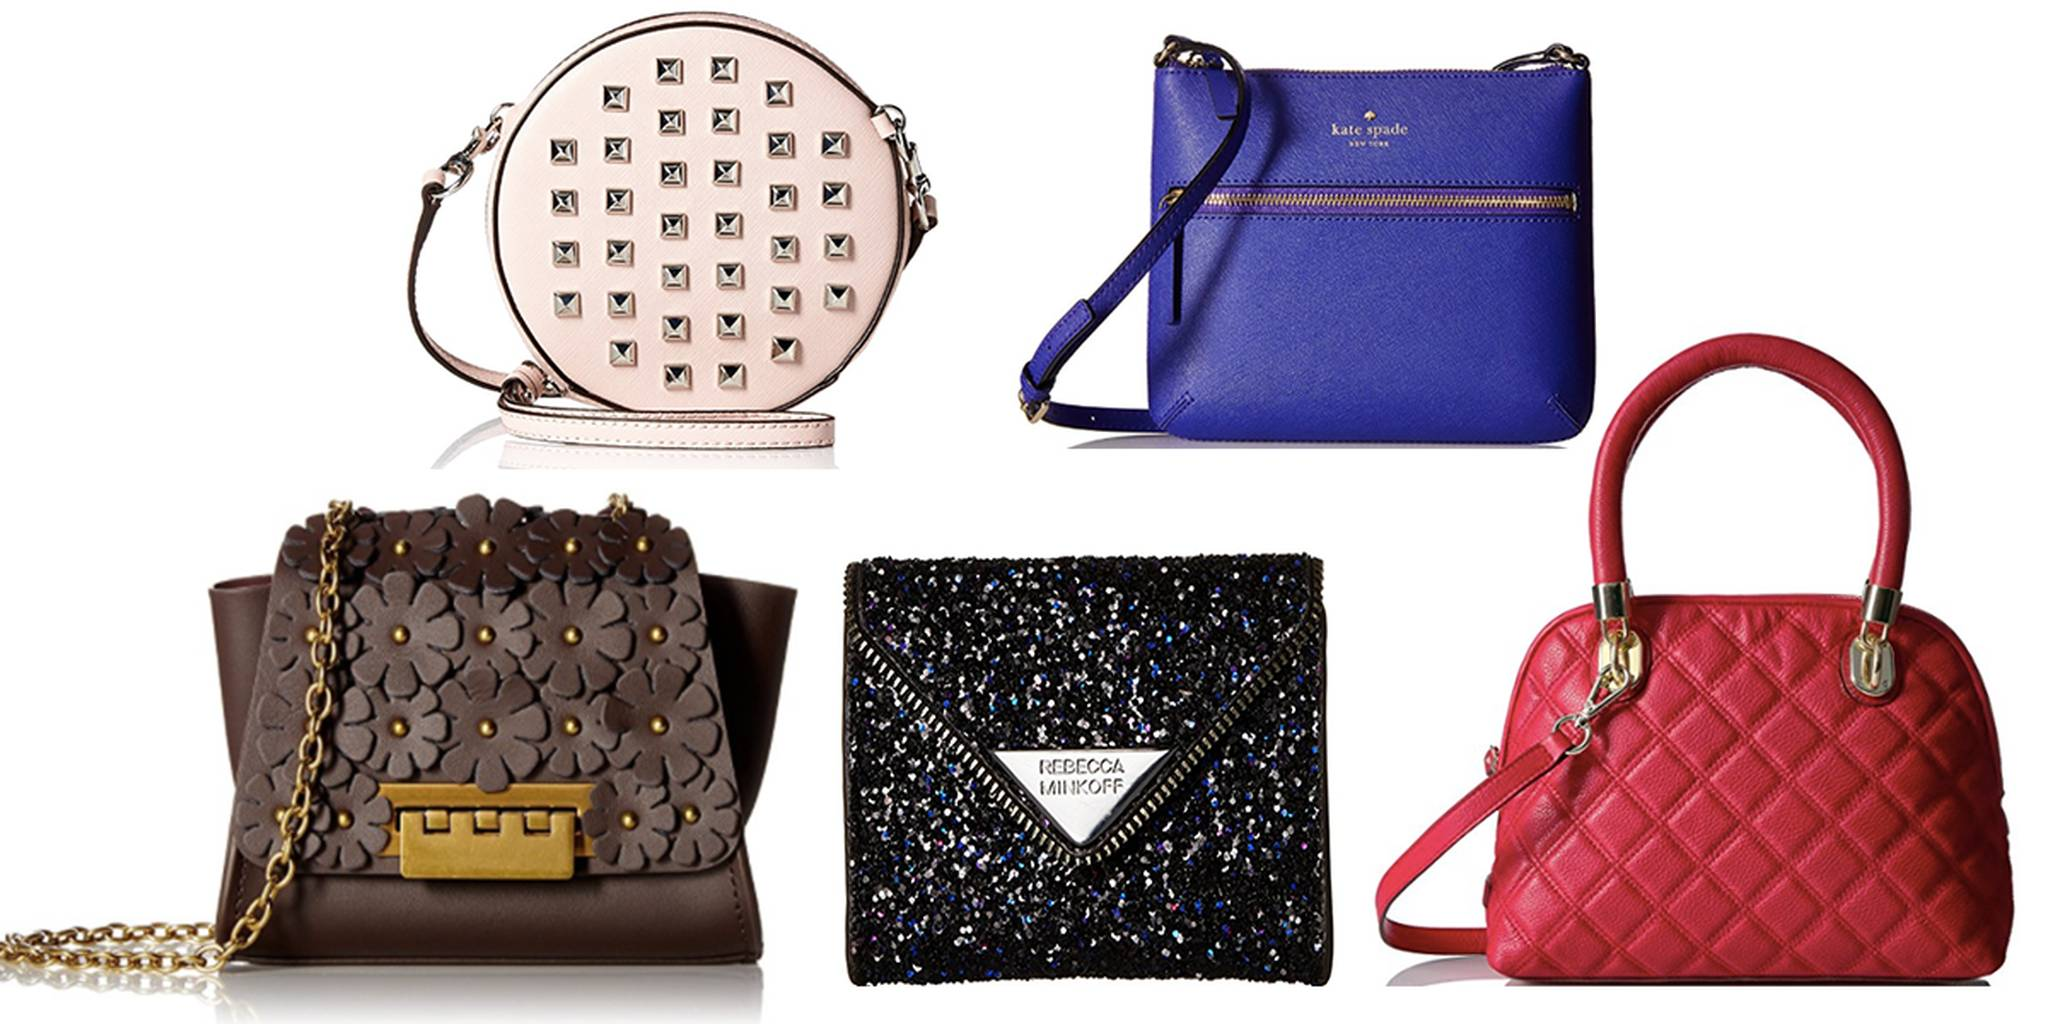 Designer handbags are up to 60 percent off with this one-day ...